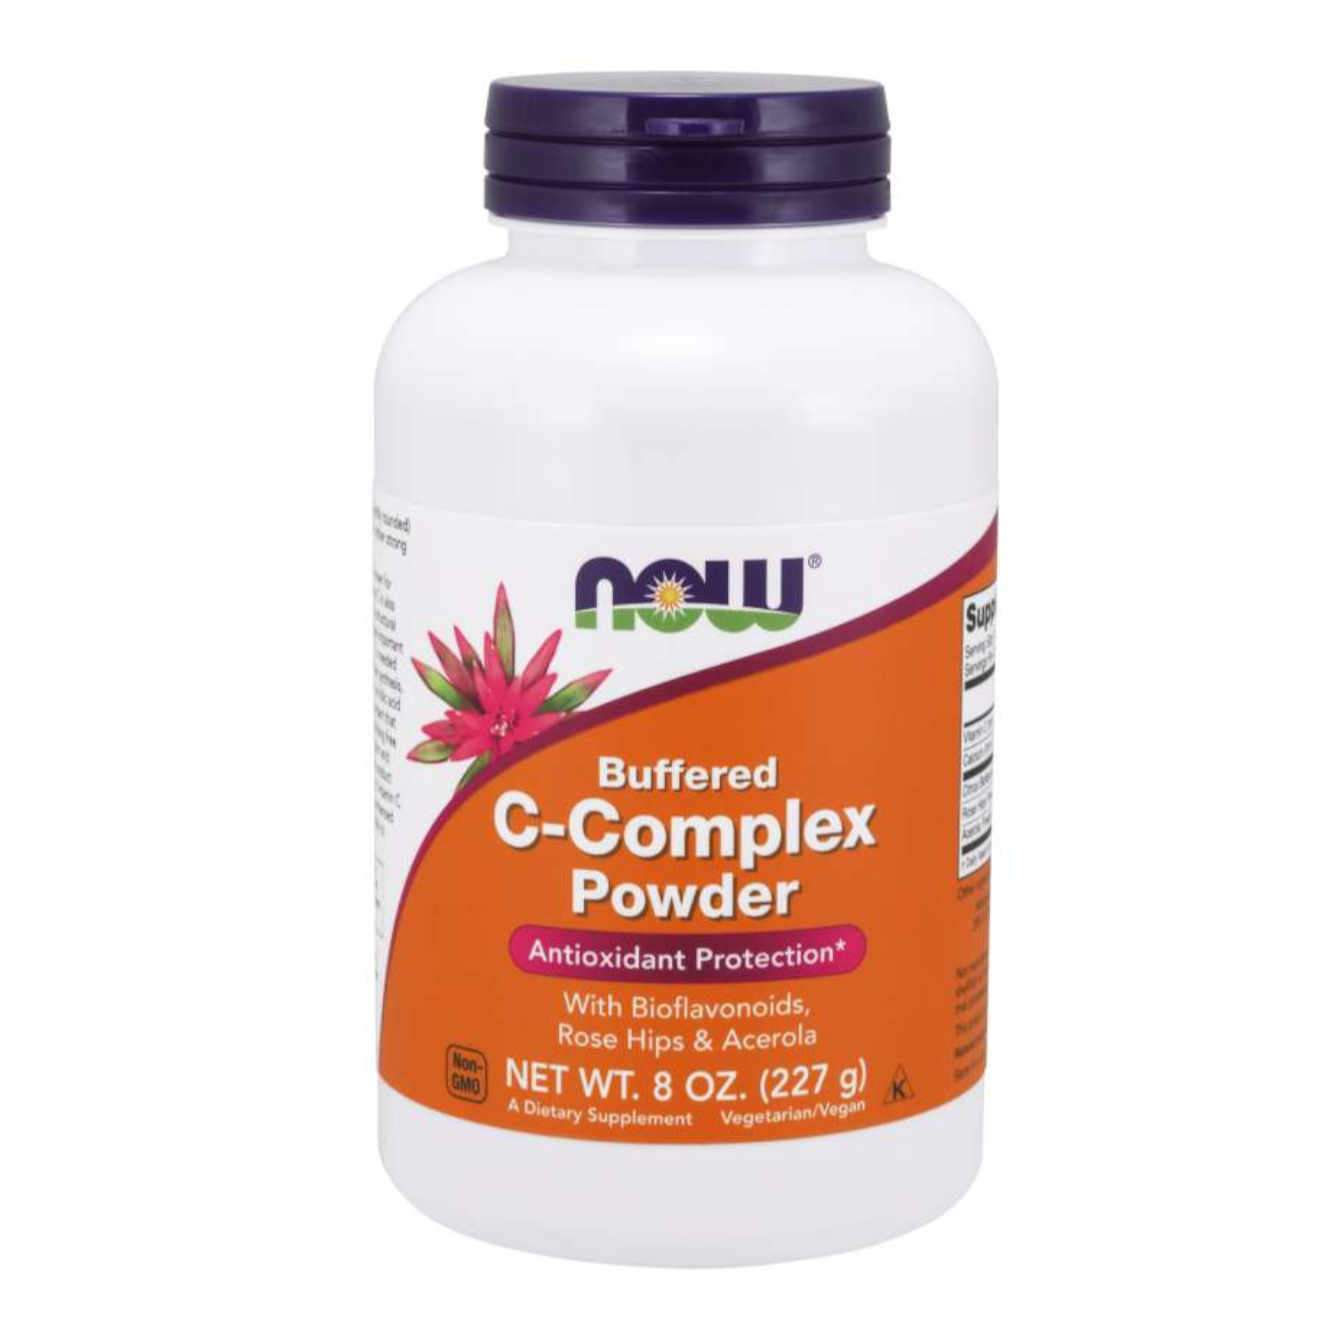 BUFFEED C-COMPLEX POWDER - 227g